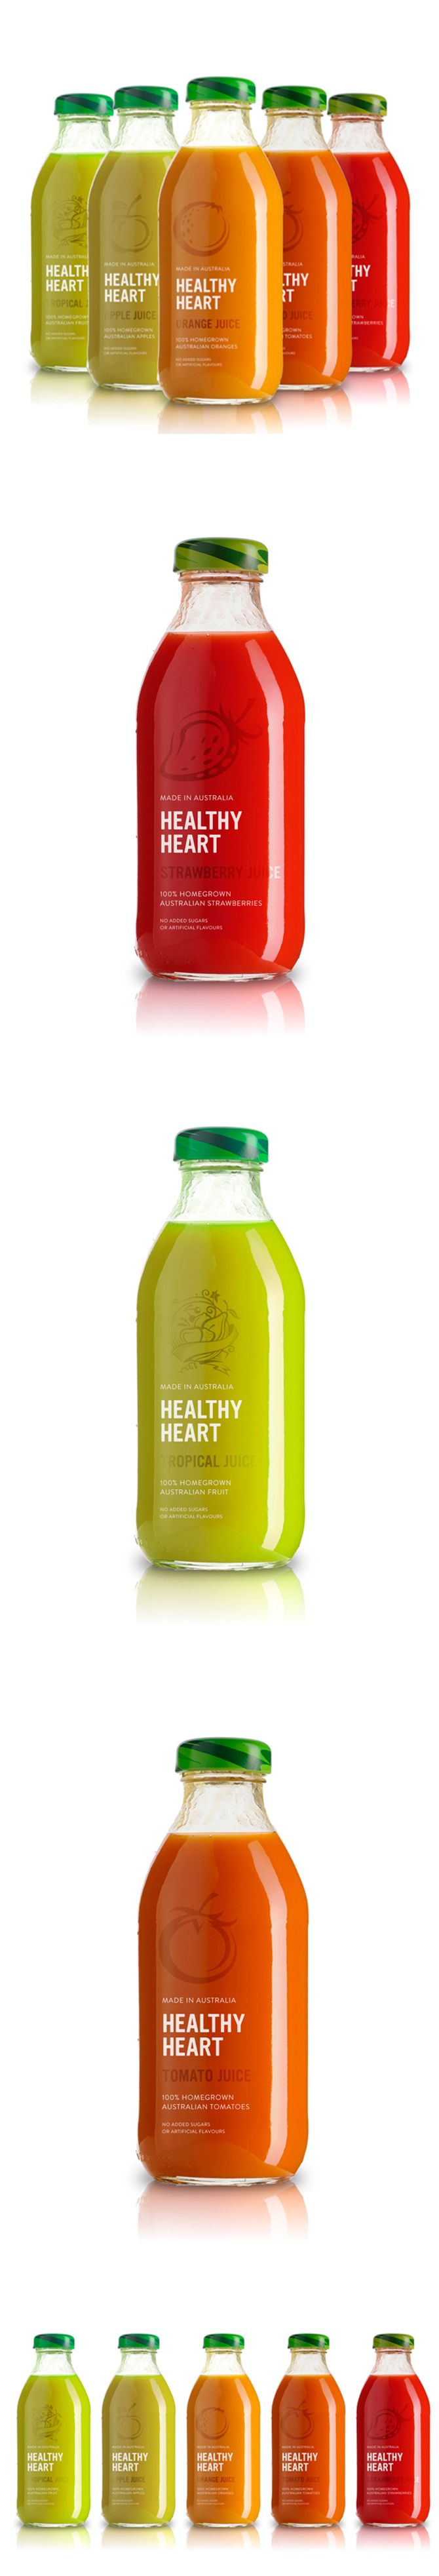 Healthy heart packaging deisgn